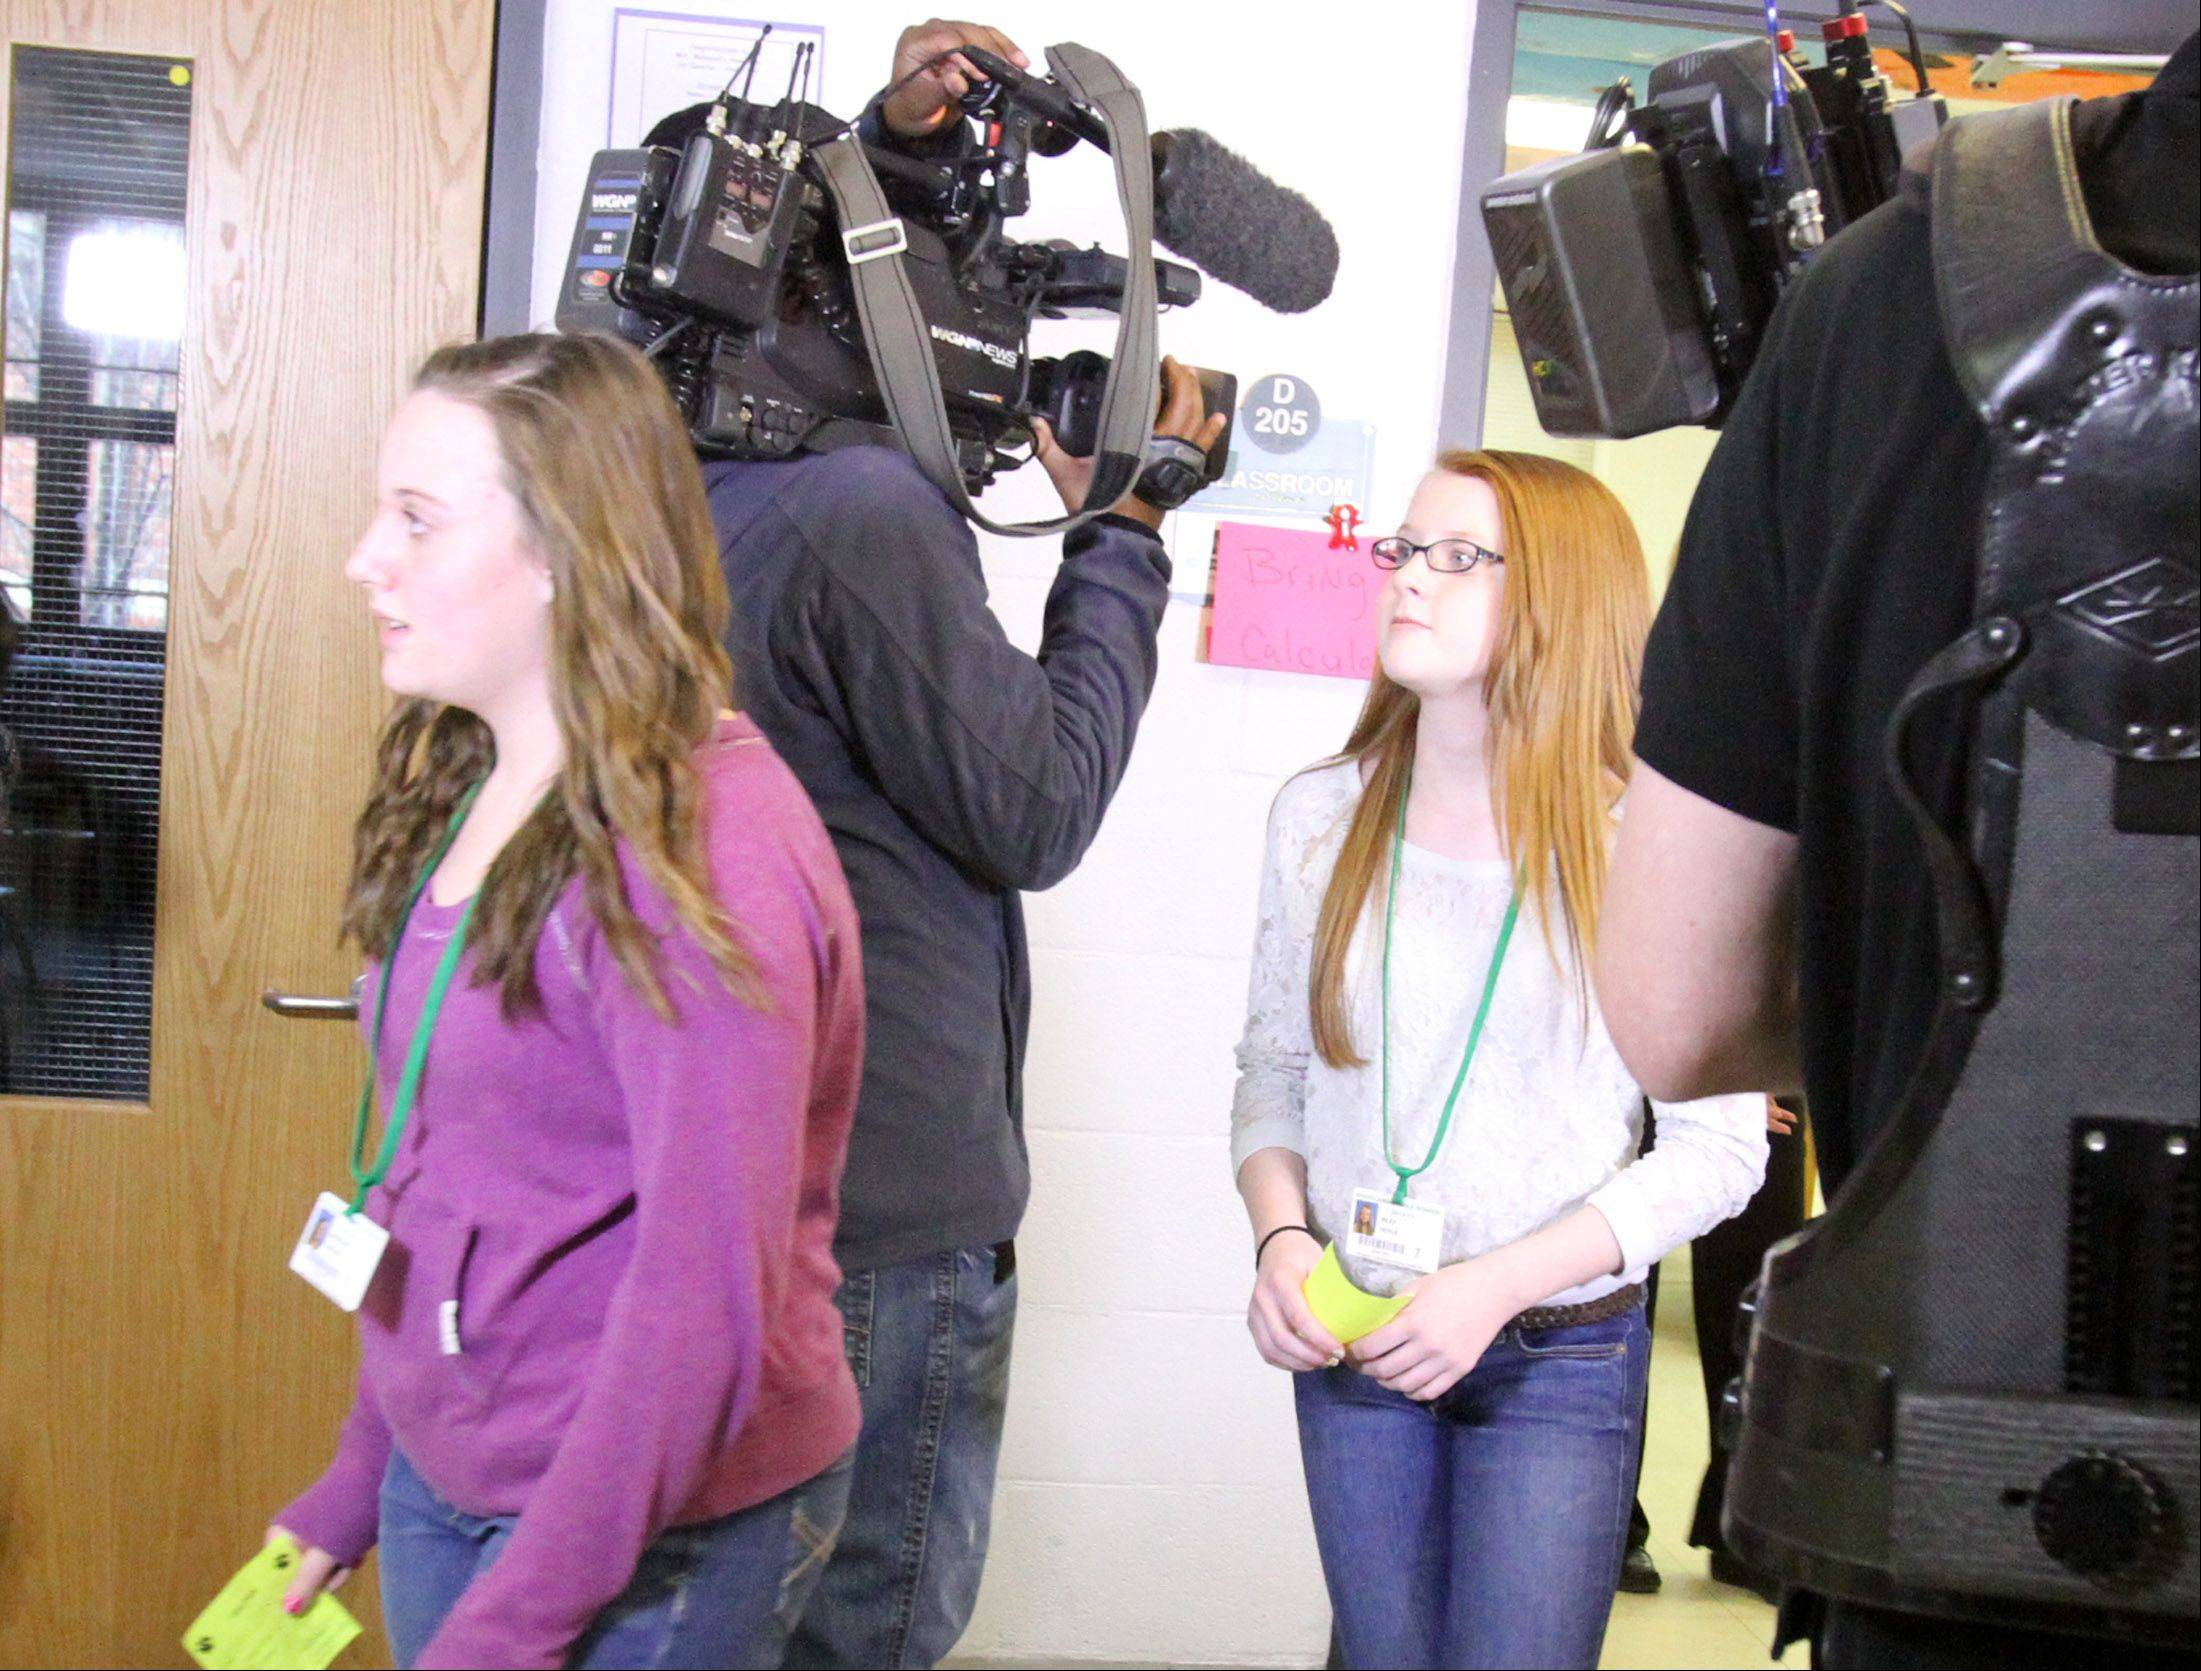 Gurnee school serves as the set for safety video